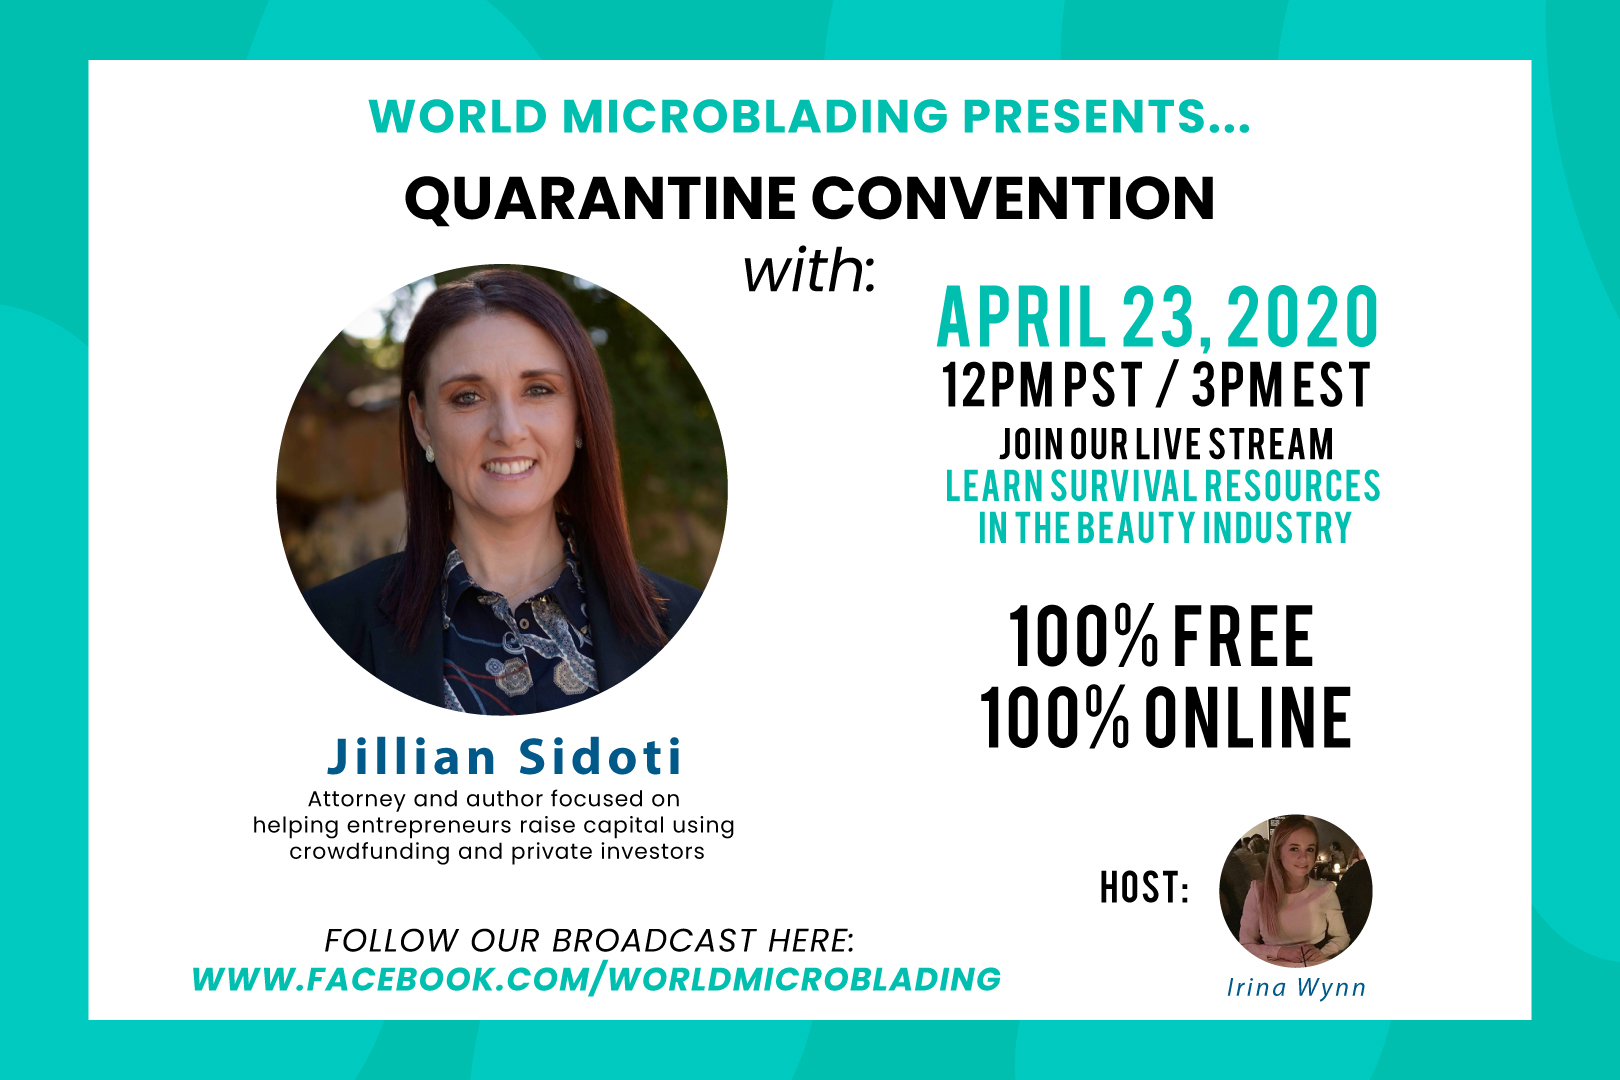 Jillian Sidoti: LIVE at the Quarantine Convention for the Beauty Industry